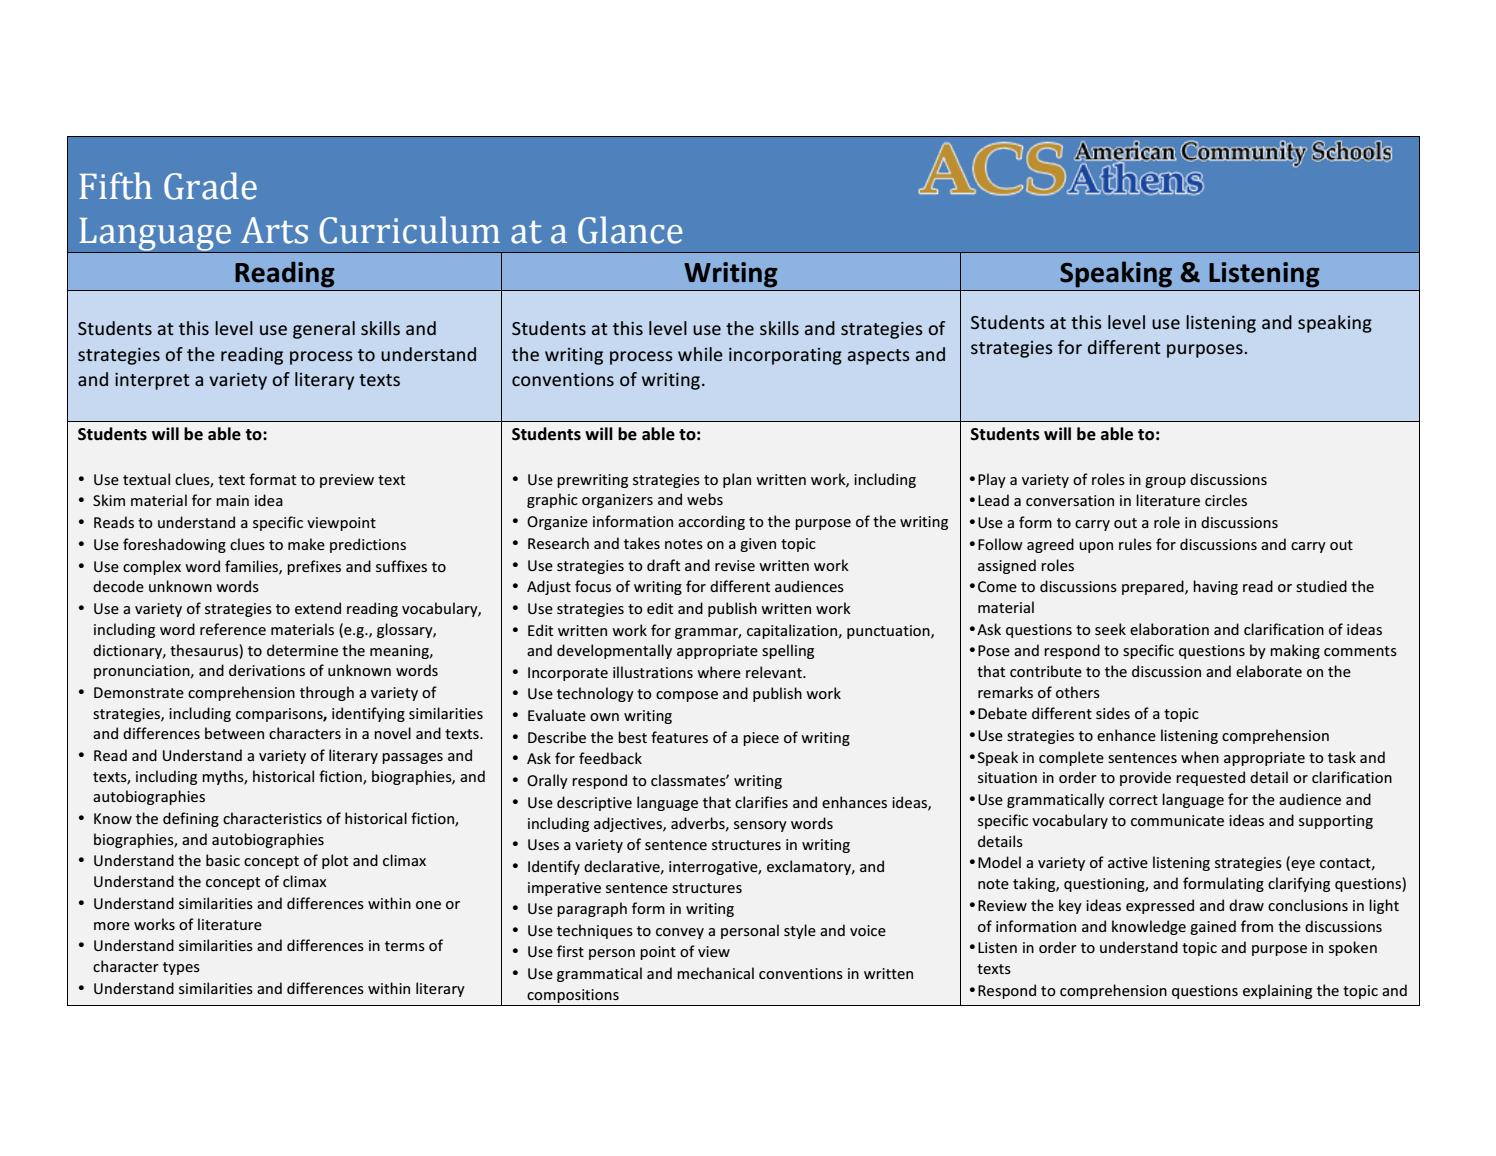 5th Grade Curriculum At A Glance 2017 By Acs Athens Issuu